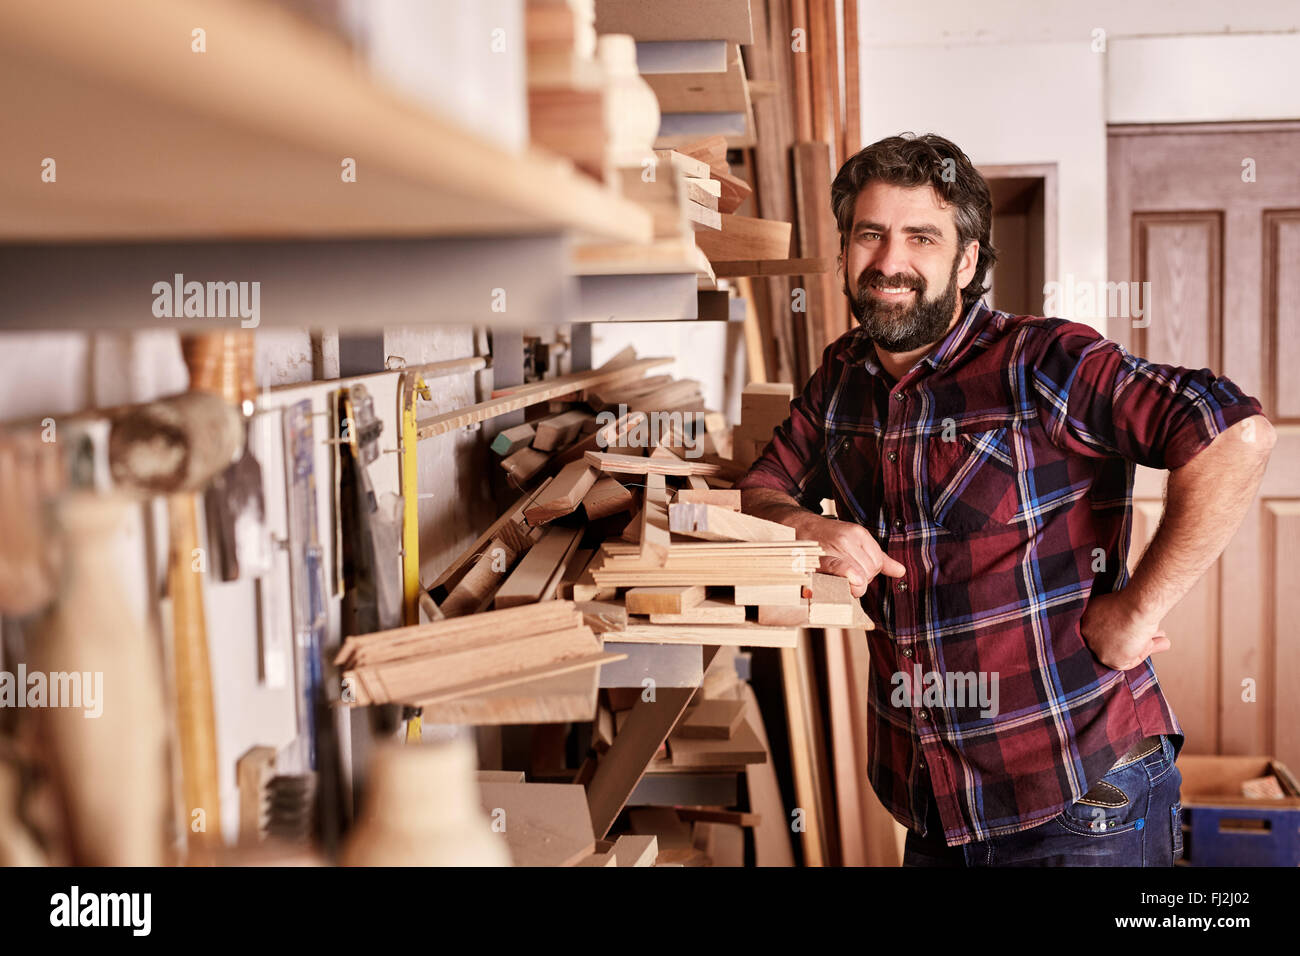 Carpentry business owner standing smiling in his workshop - Stock Image